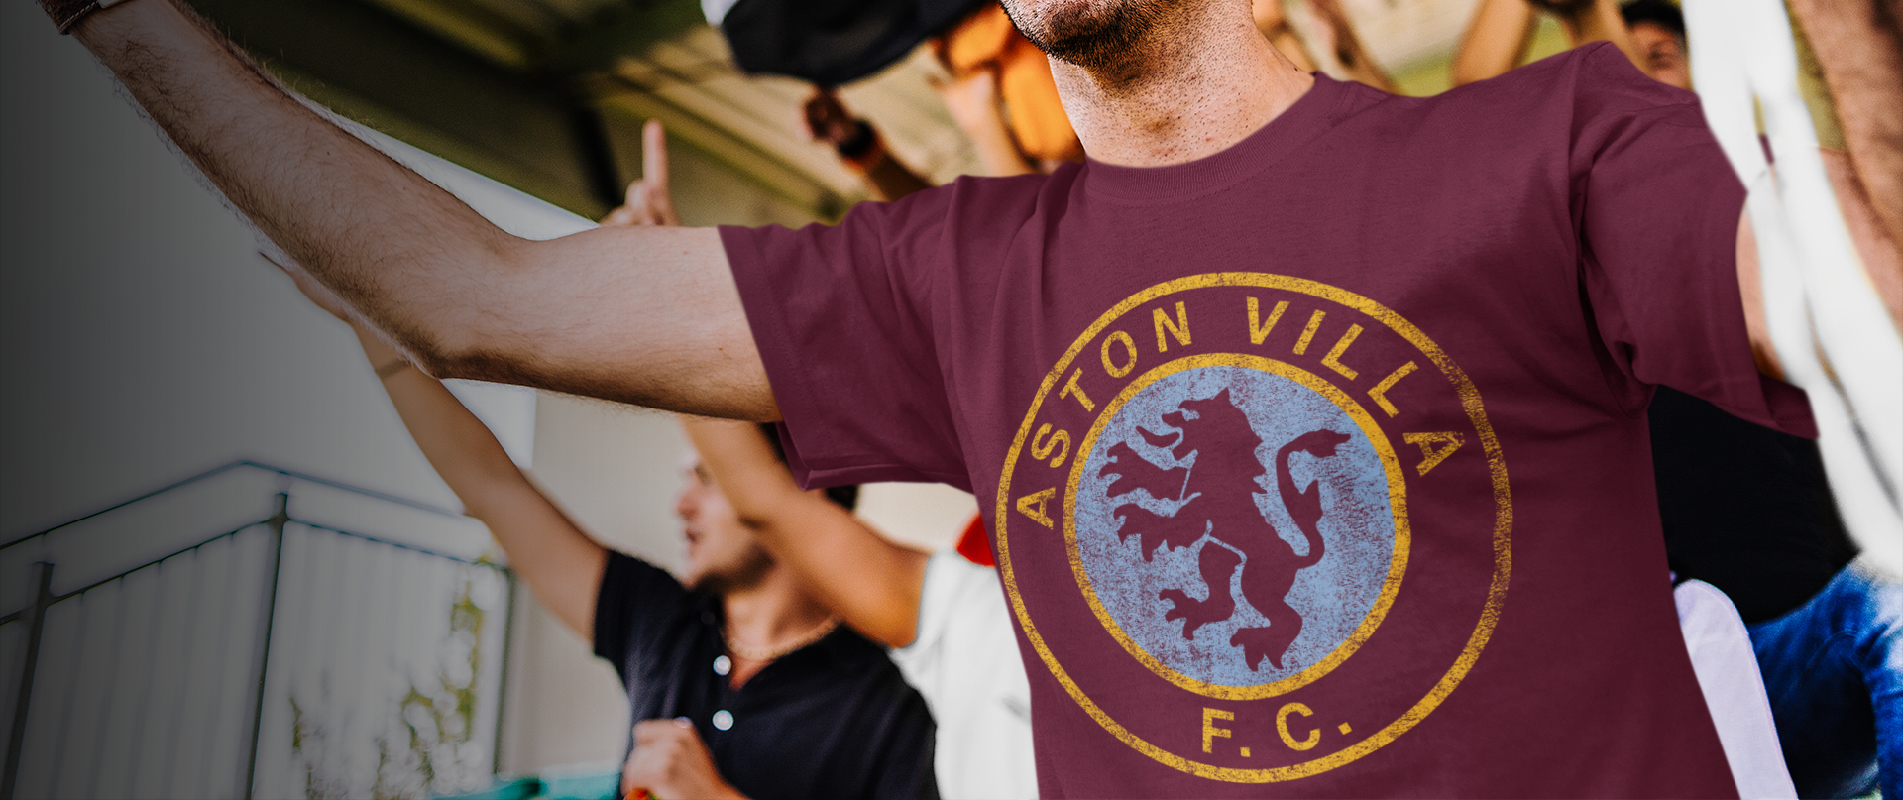 man-in-stands-in-aston-villa-t-shirt